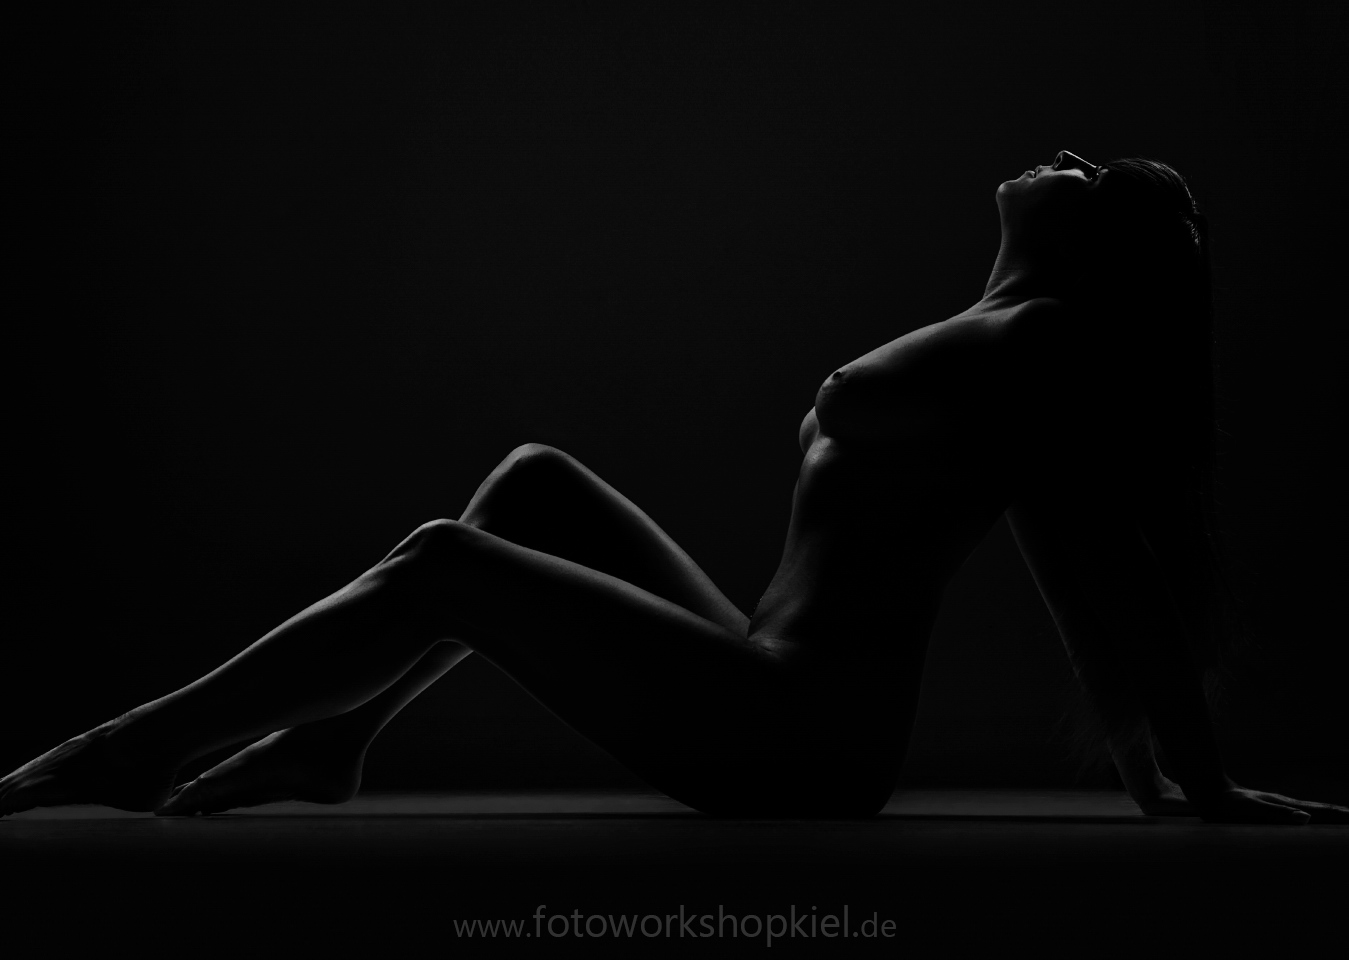 Dessous-Shooting-Fotoworkshop-Kiel-Playboy-Model-sexy-Shooting-Fotostudio-Fotograf-Kiel-Hochzeitsfotograf-www.fotoworkshopkiel.de-Beautshoot-Fashion-Shooting-Federshooting-Akt-Aktshooting-Aktmodell-sexy-Po-Lowkey-klassich-Aktfotograf Kiel-Aktfotografie